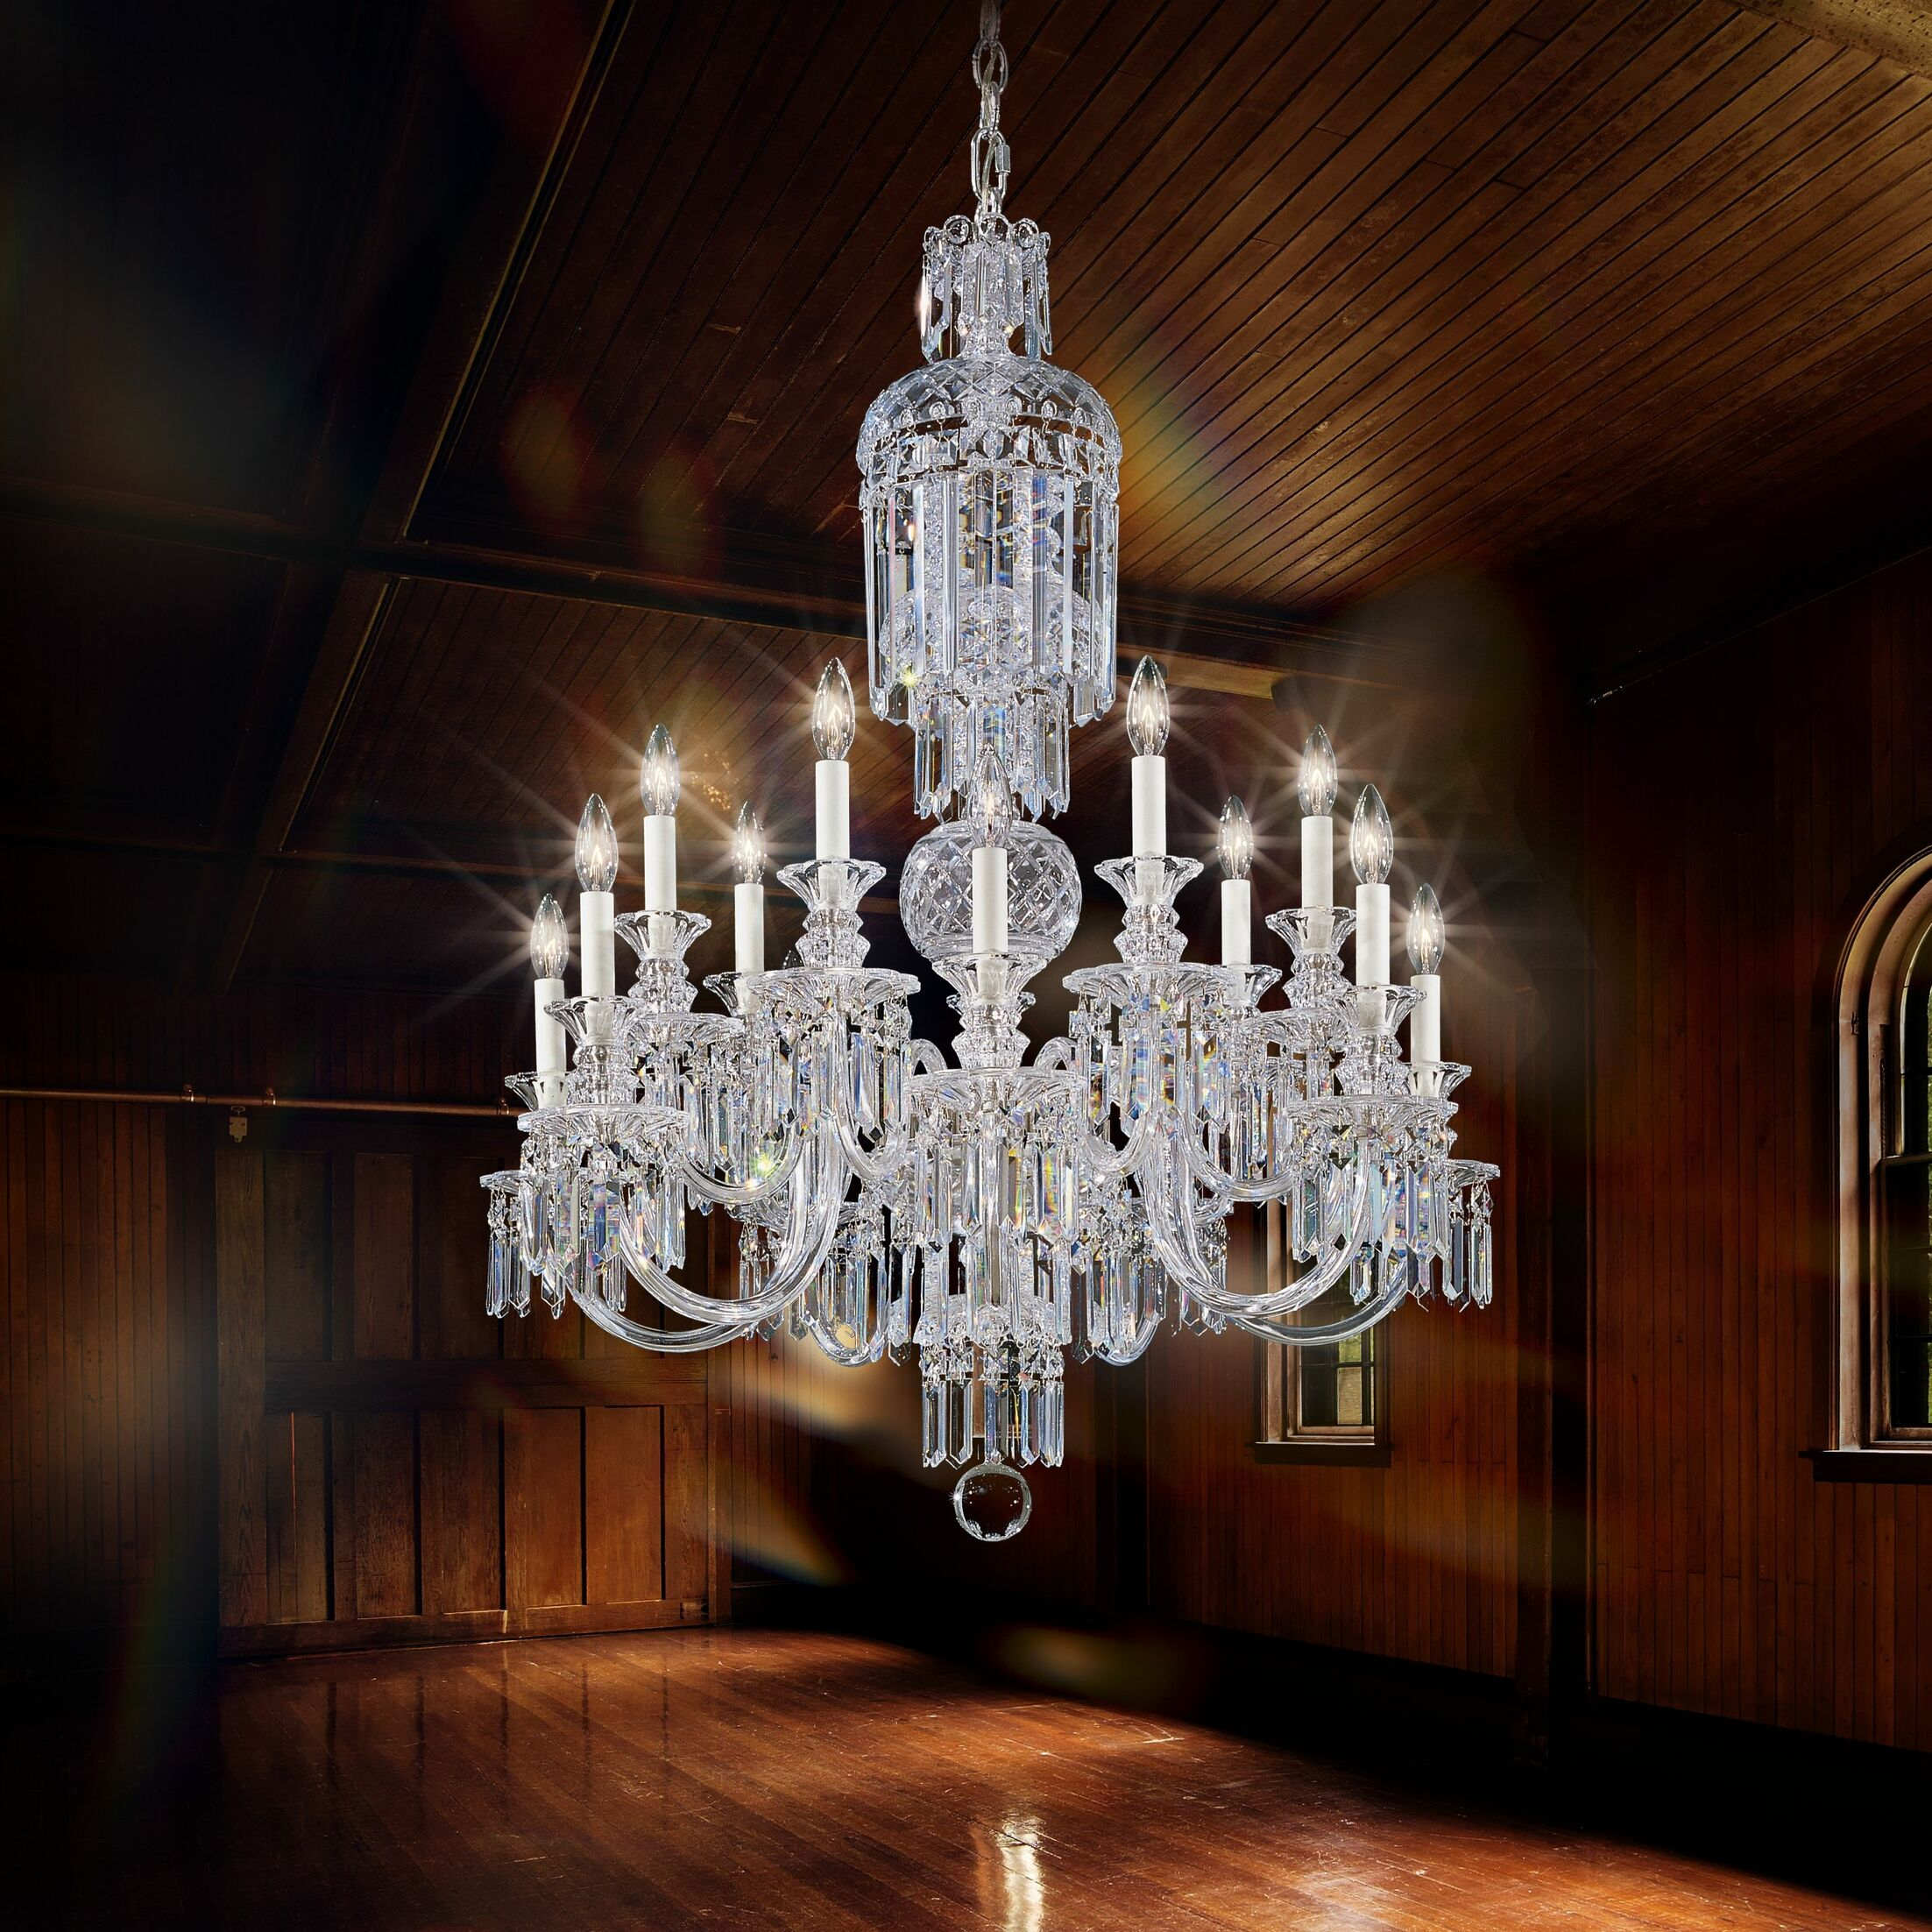 Fairfax 14-Light Candle Style Chandelier